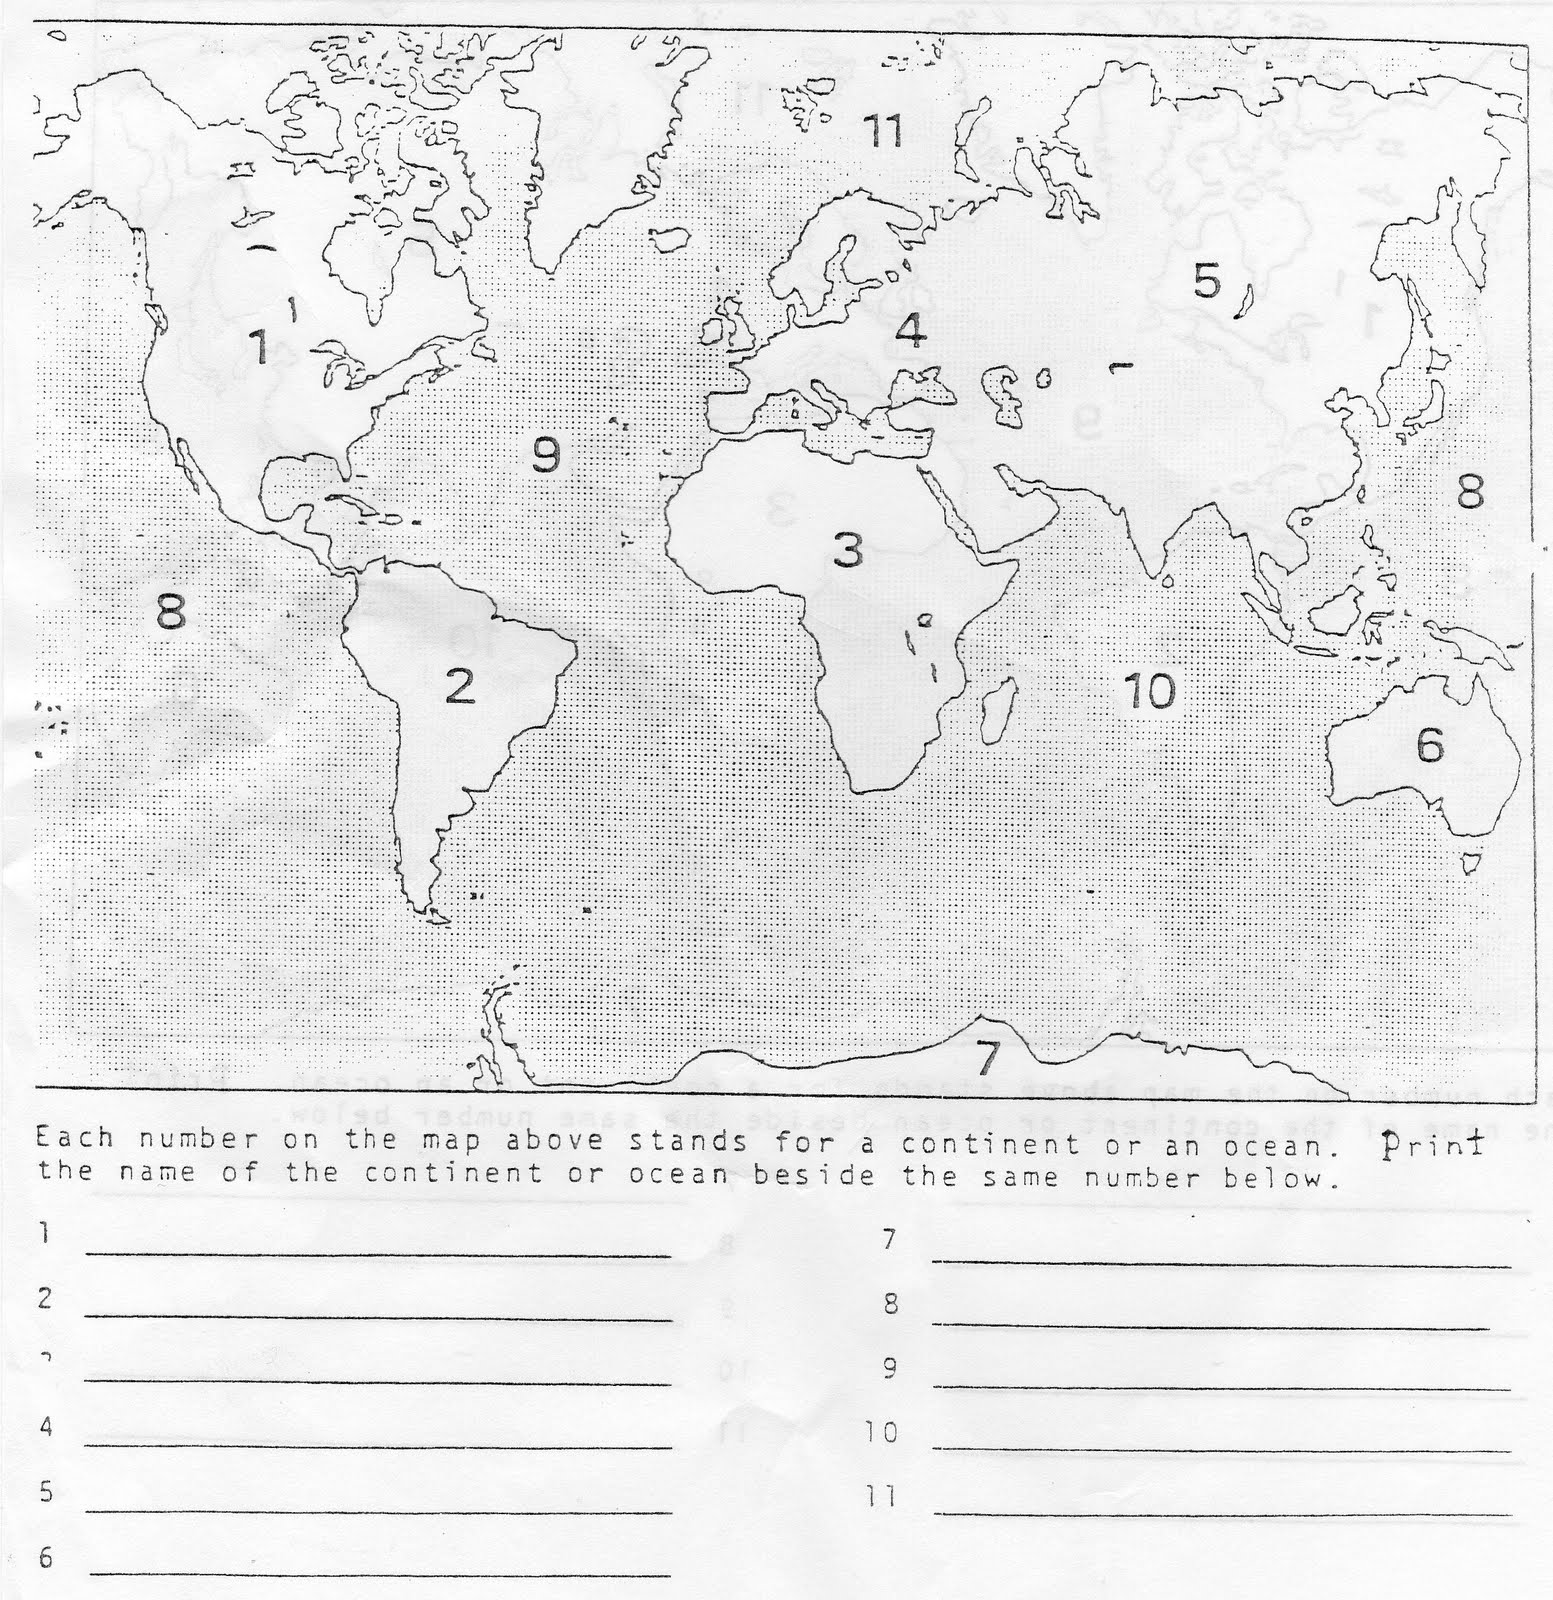 hight resolution of Continents And Oceans Worksheets 5th Grade   Printable Worksheets and  Activities for Teachers